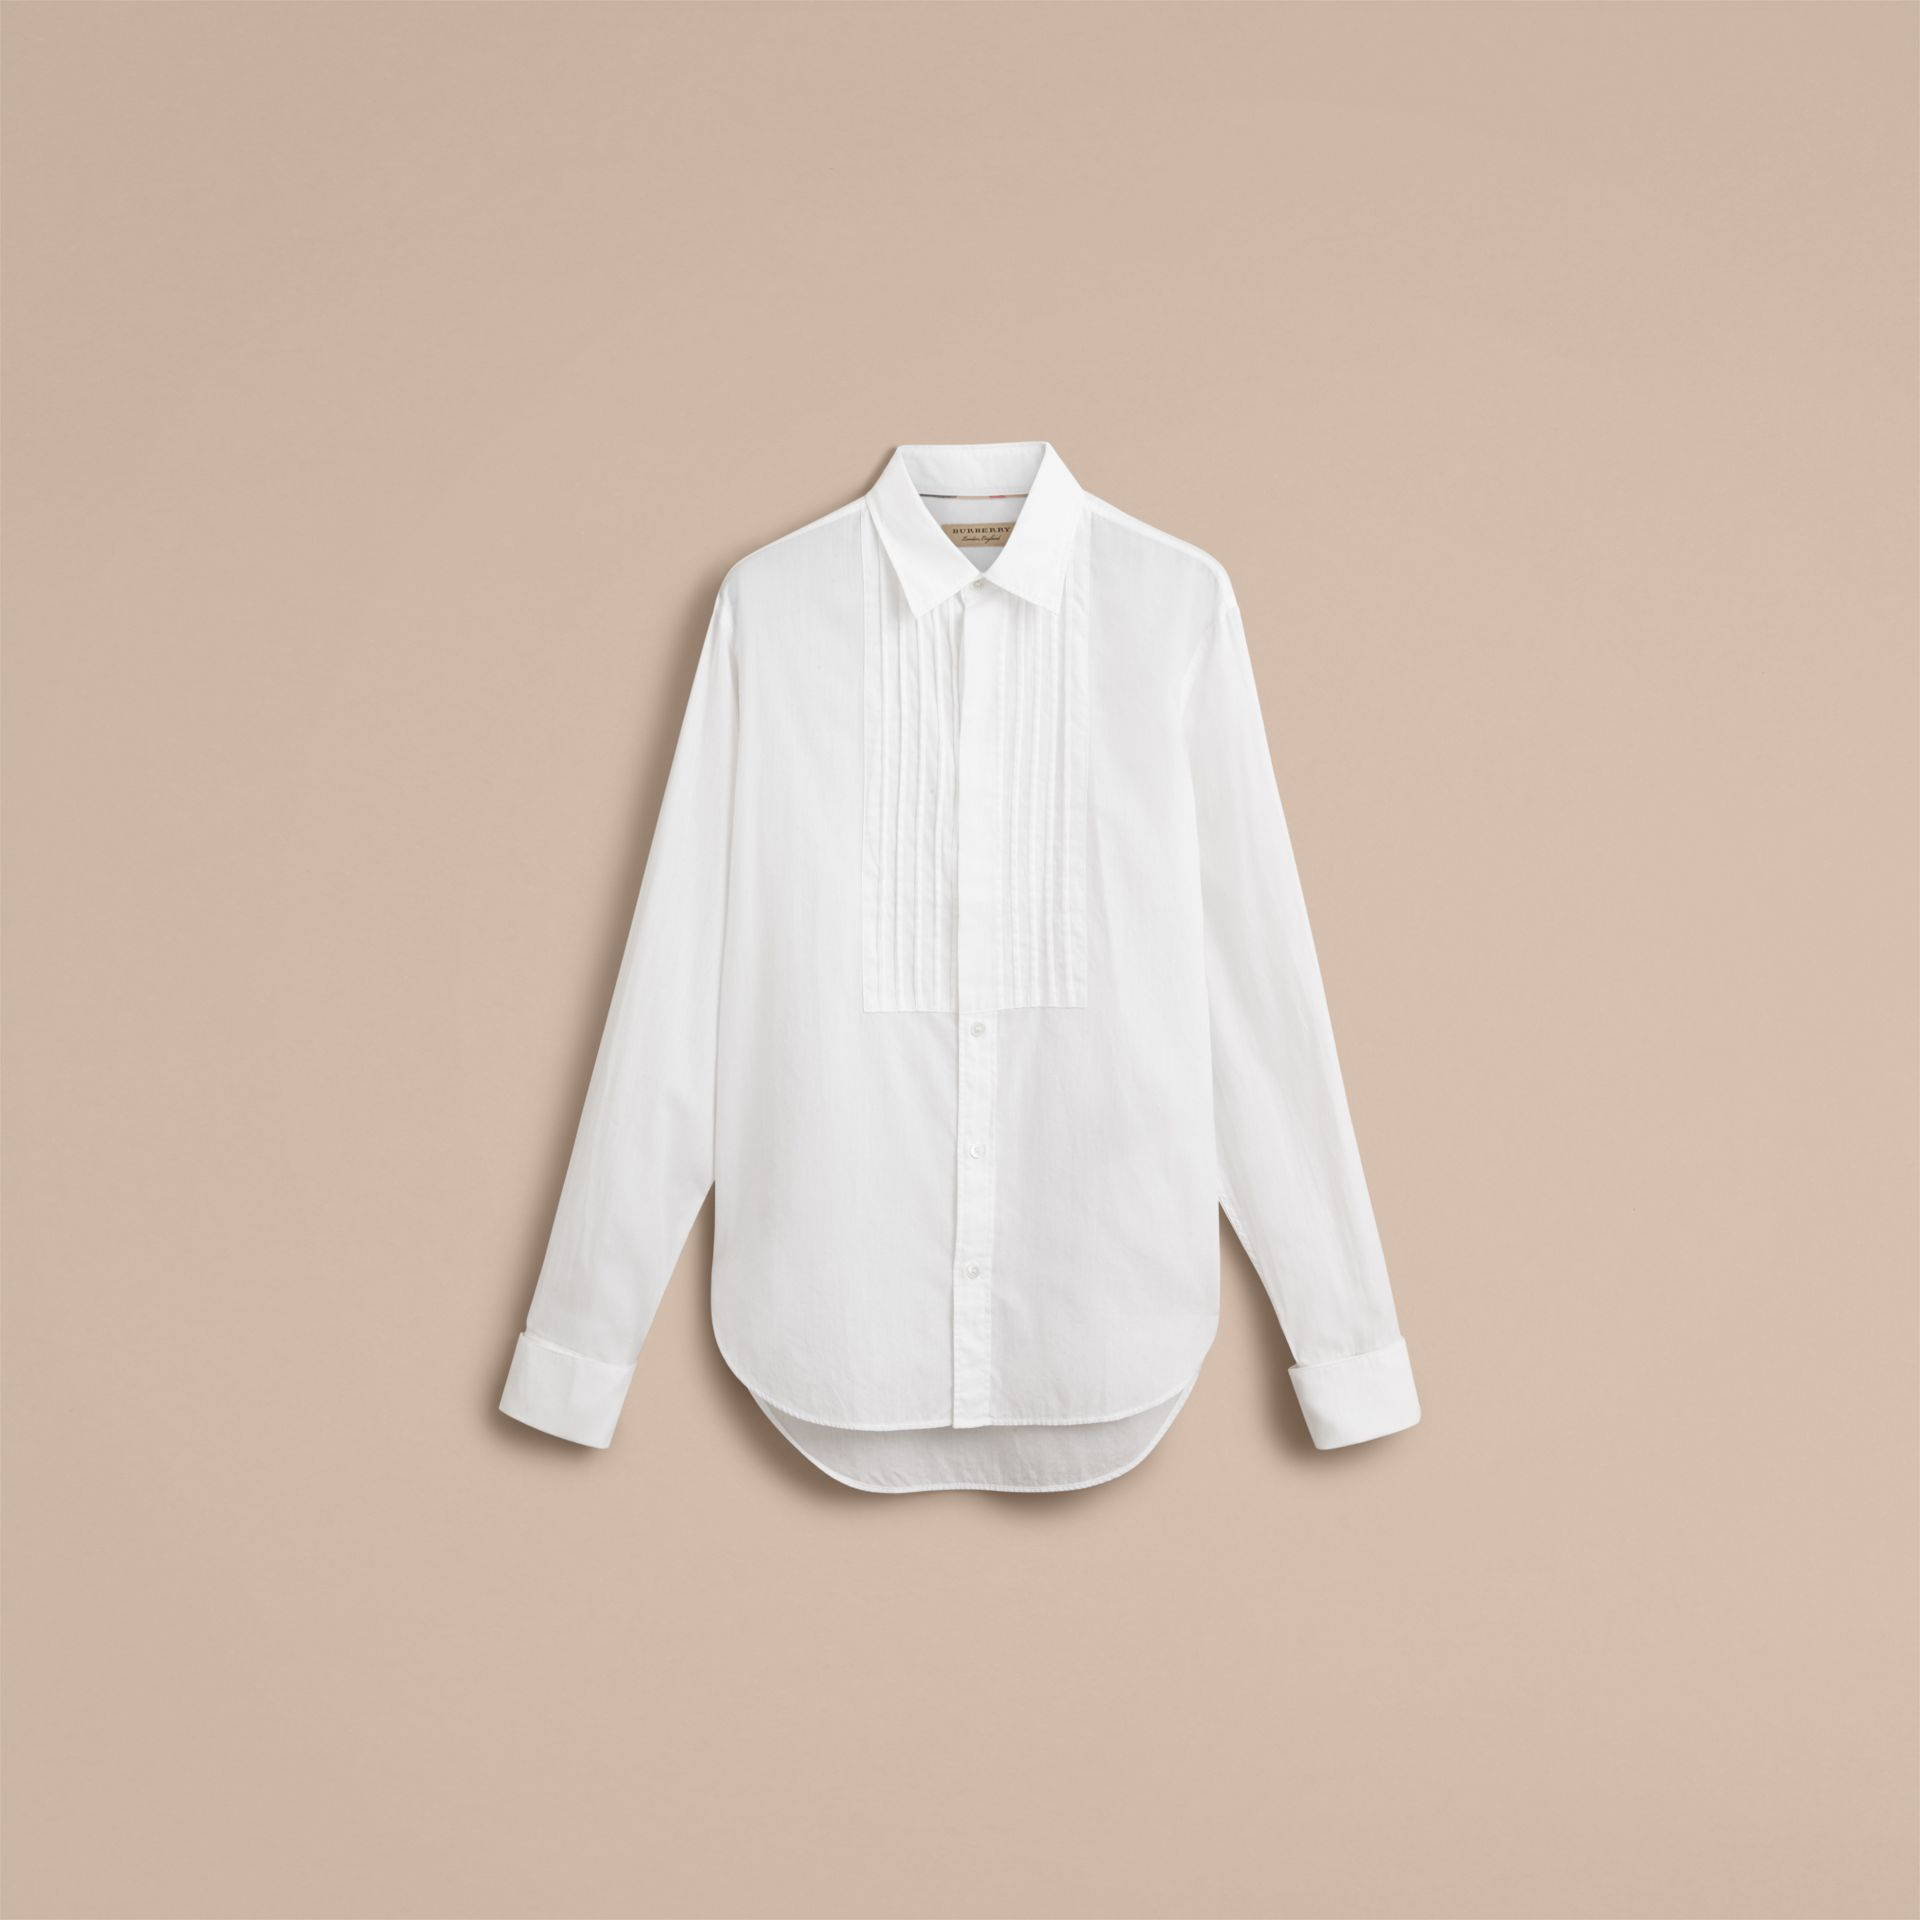 Unisex Double-cuff Pintuck Bib Cotton Shirt in White - Men | Burberry - gallery image 4